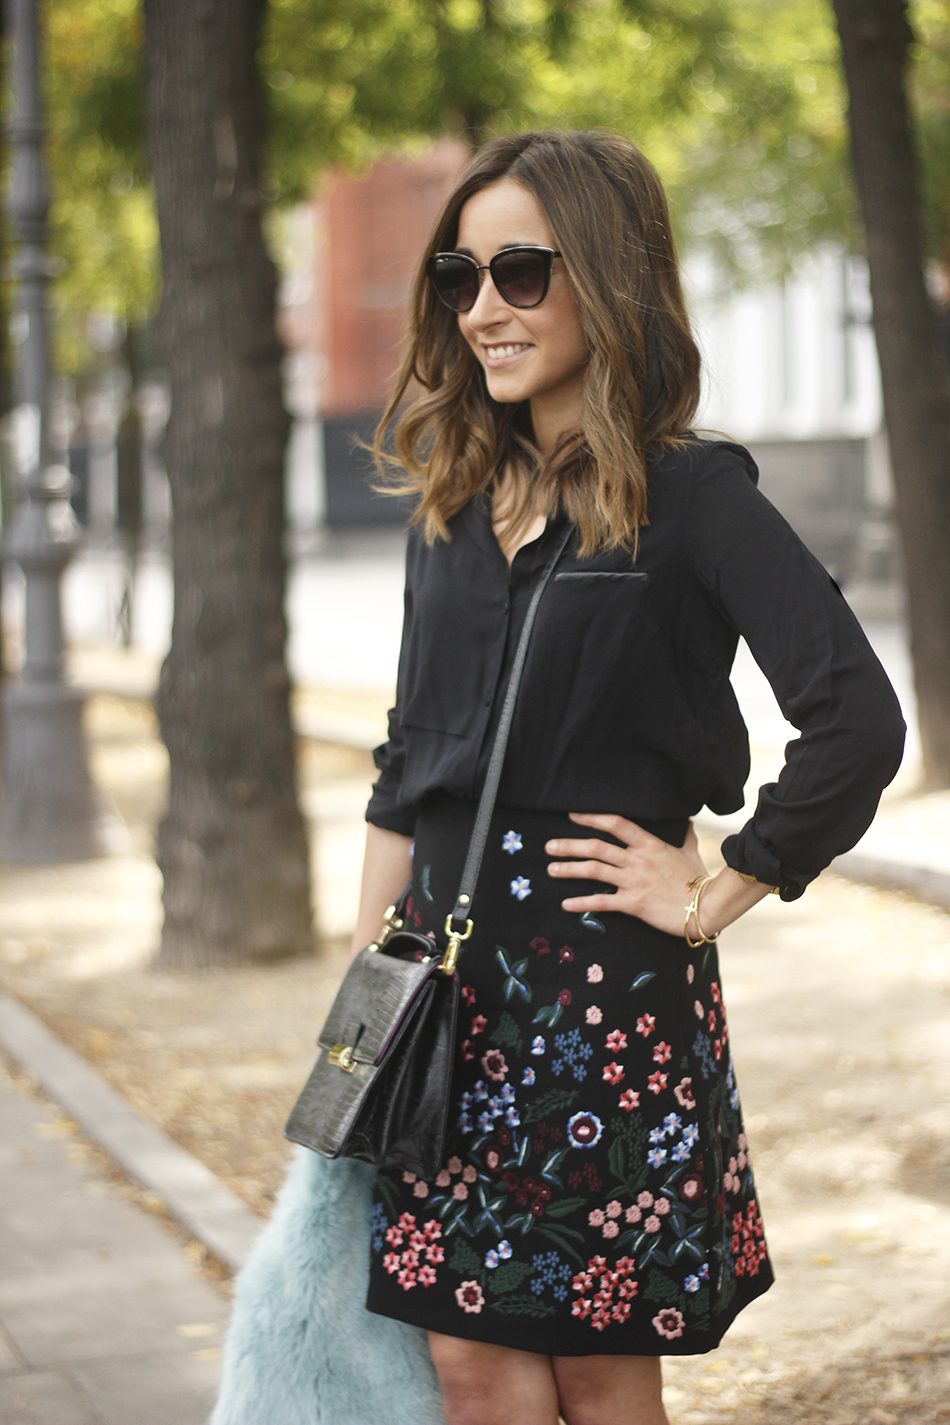 black skirt with flowers outfit09